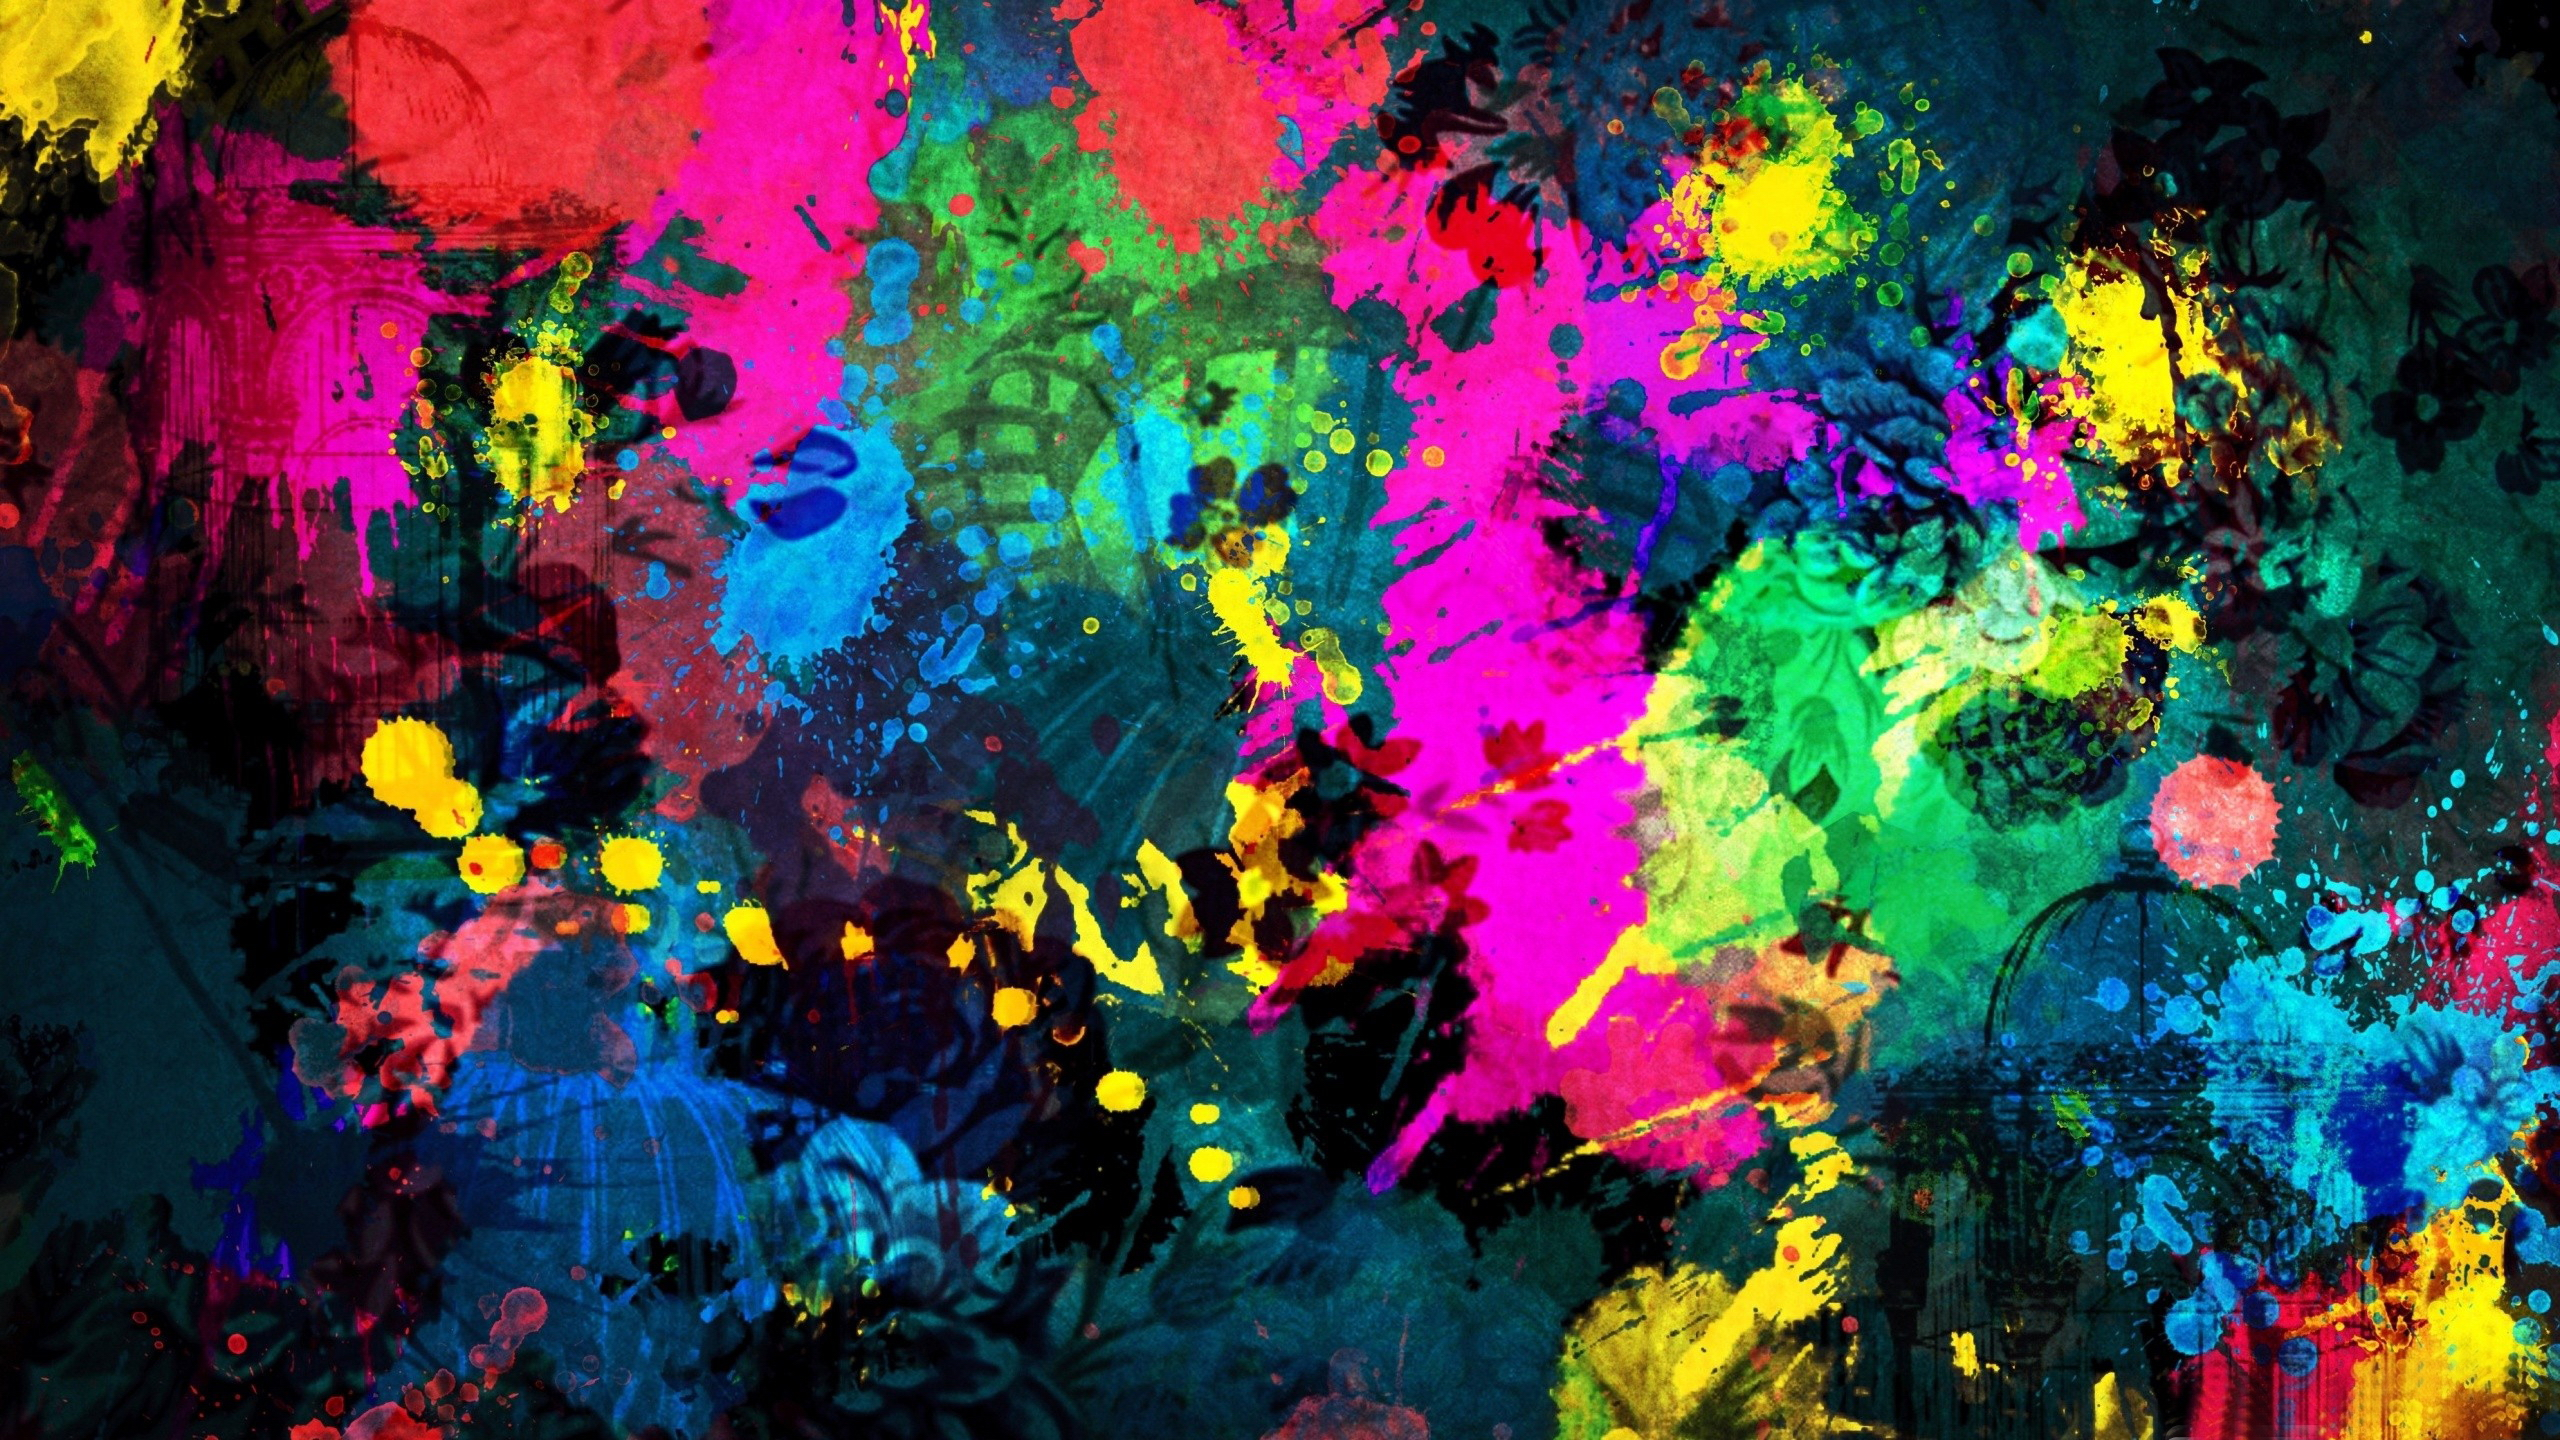 Abstract Mixed Paint Colors wallpaper | 3d and abstract | Wallpaper ...